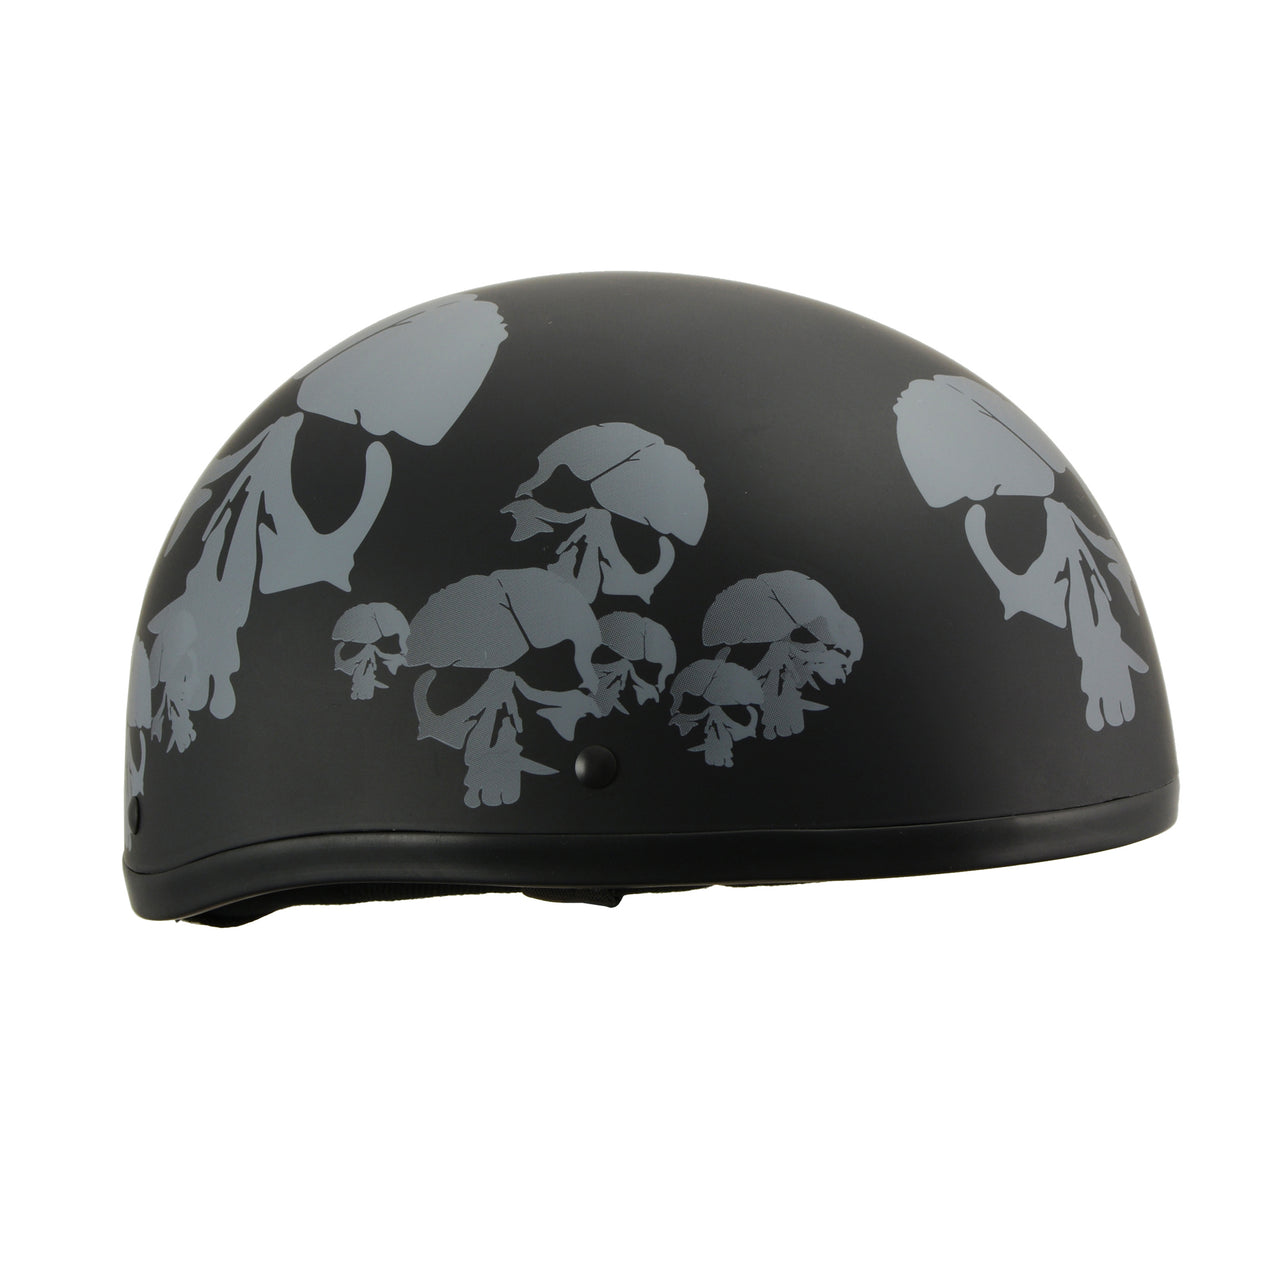 MPH America's Smallest DOT Helmet w/ Skeleton Head Graphics Matte Black - HighwayLeather